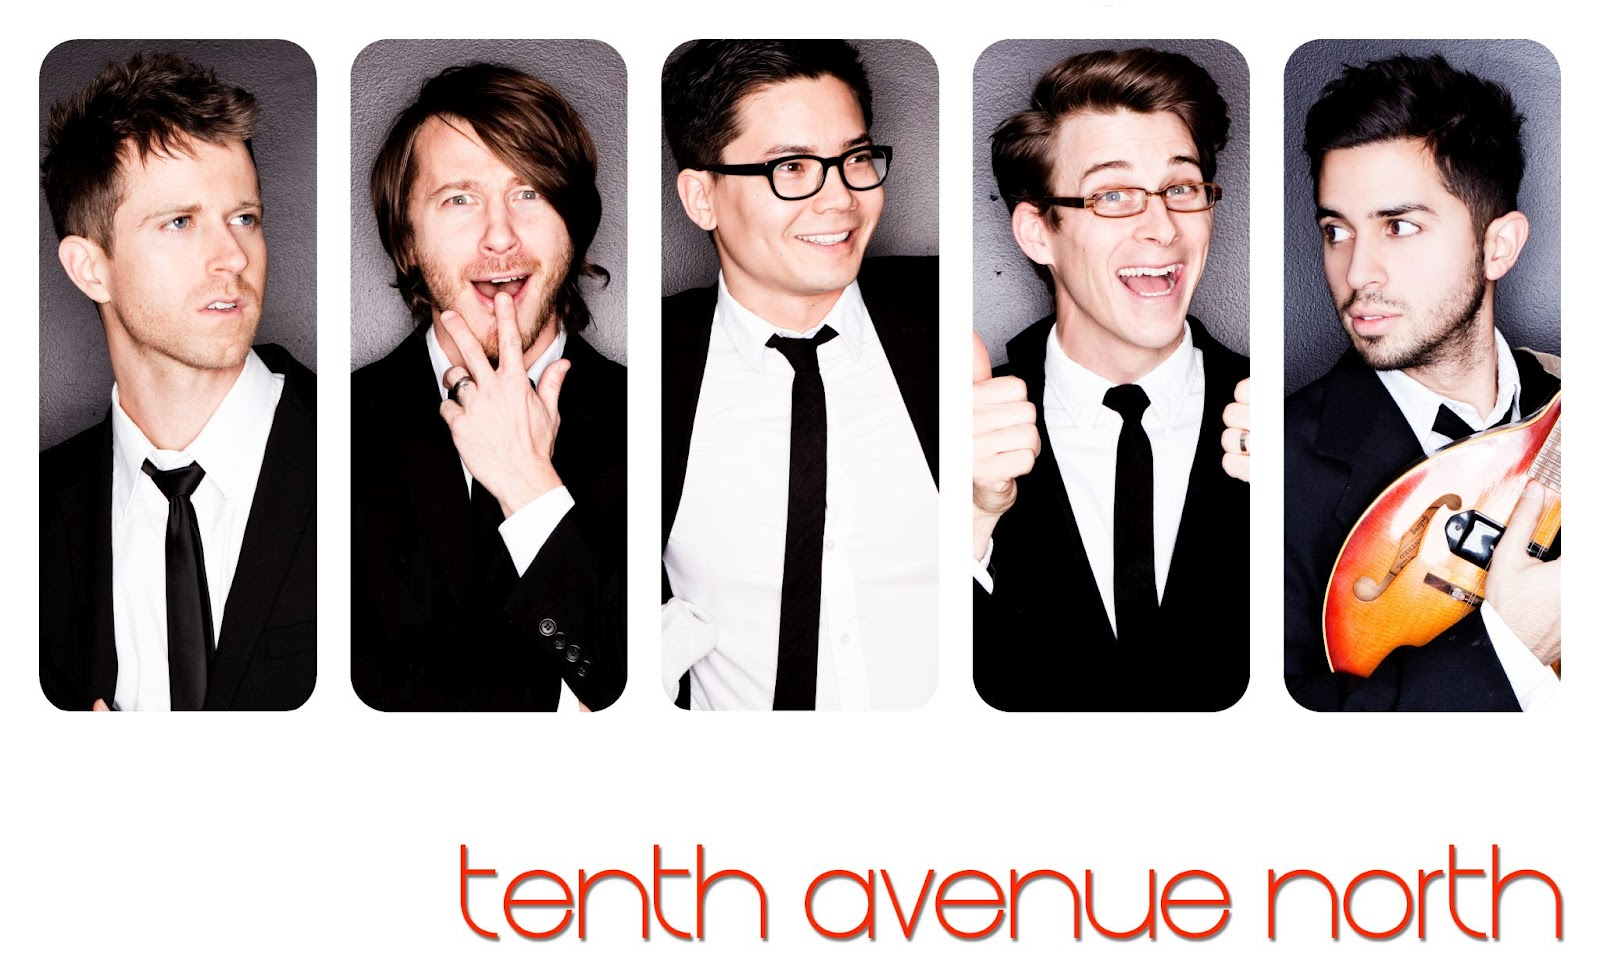 The christian music junkie tenth avenue north 39 s new album for Tenth avenue north t shirts